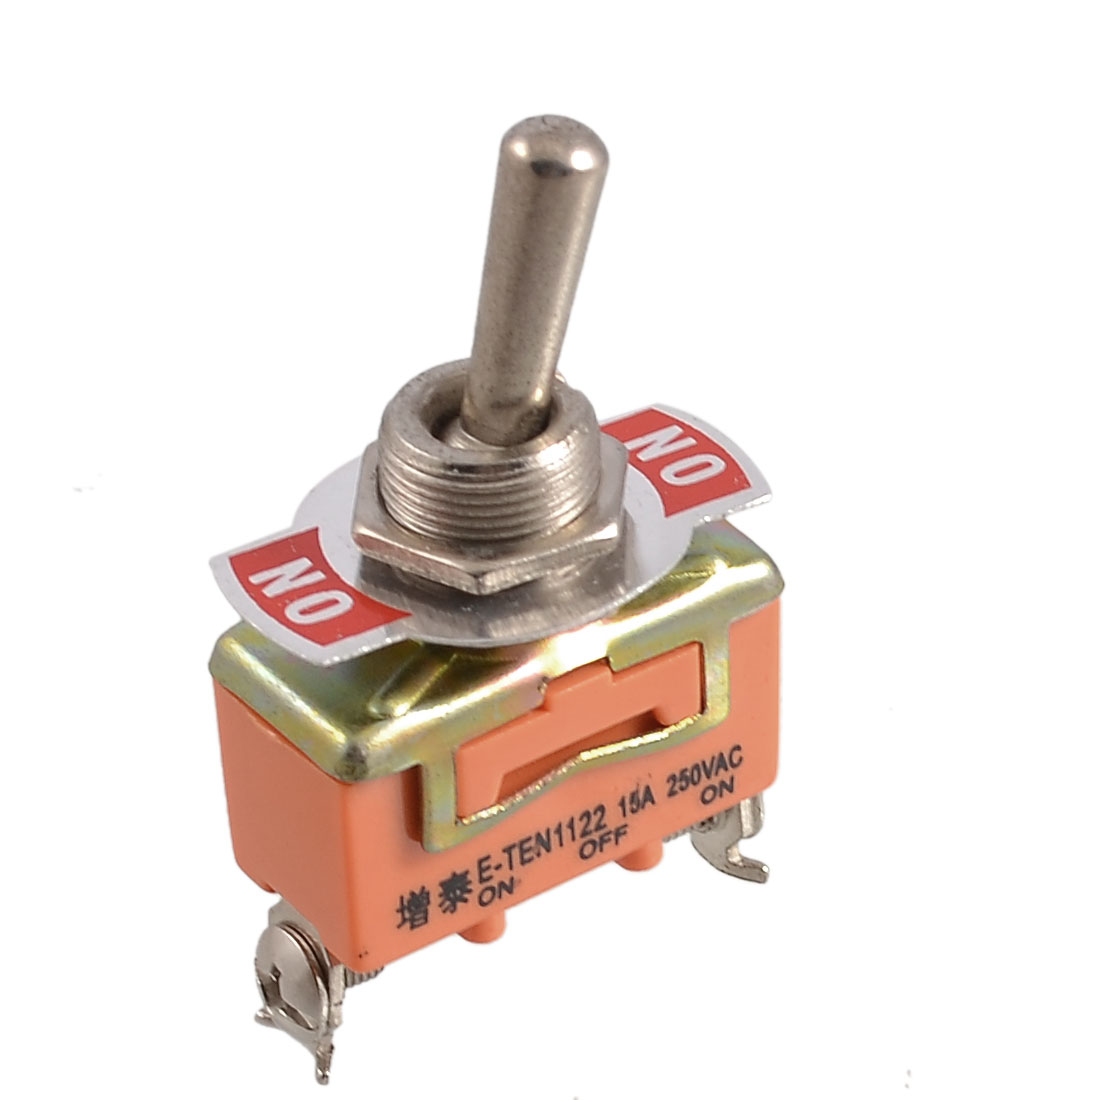 15A/250V AC ON/OFF/ON 3 Positions 3 Pin SPDT Latching Toggle Switch